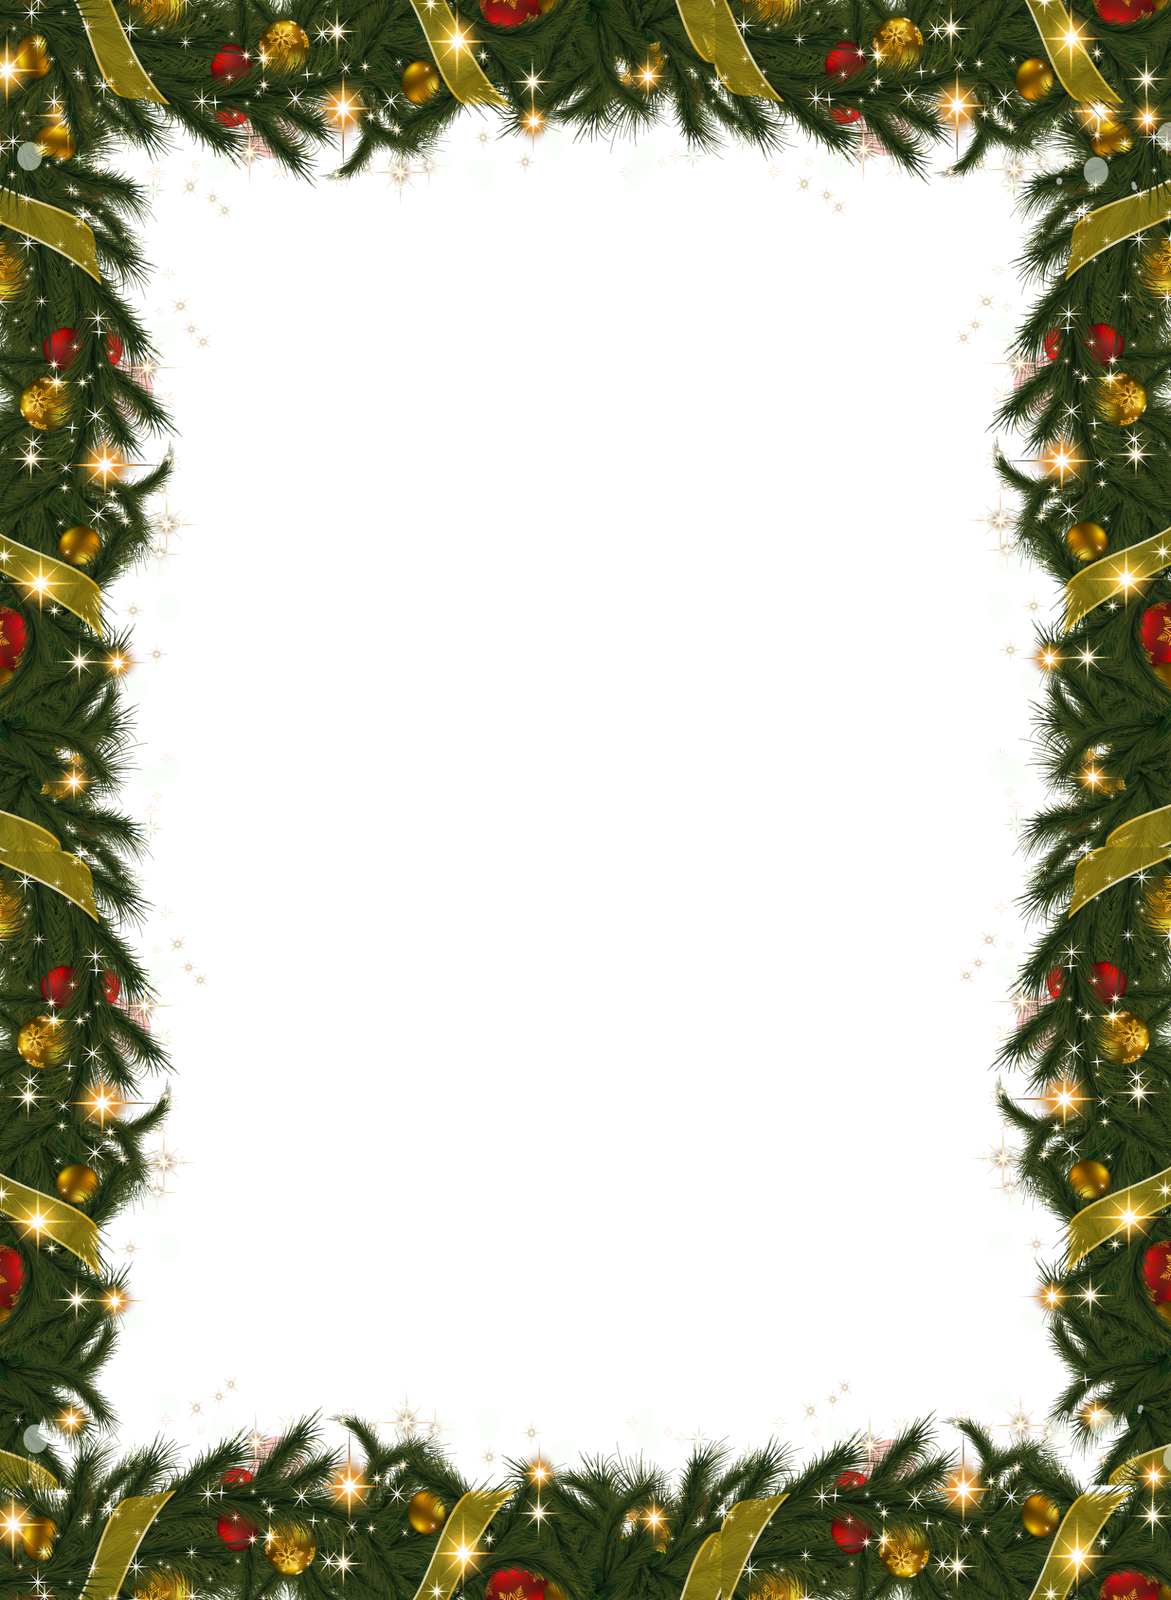 Frame clipart holiday Full Garland Gallery View